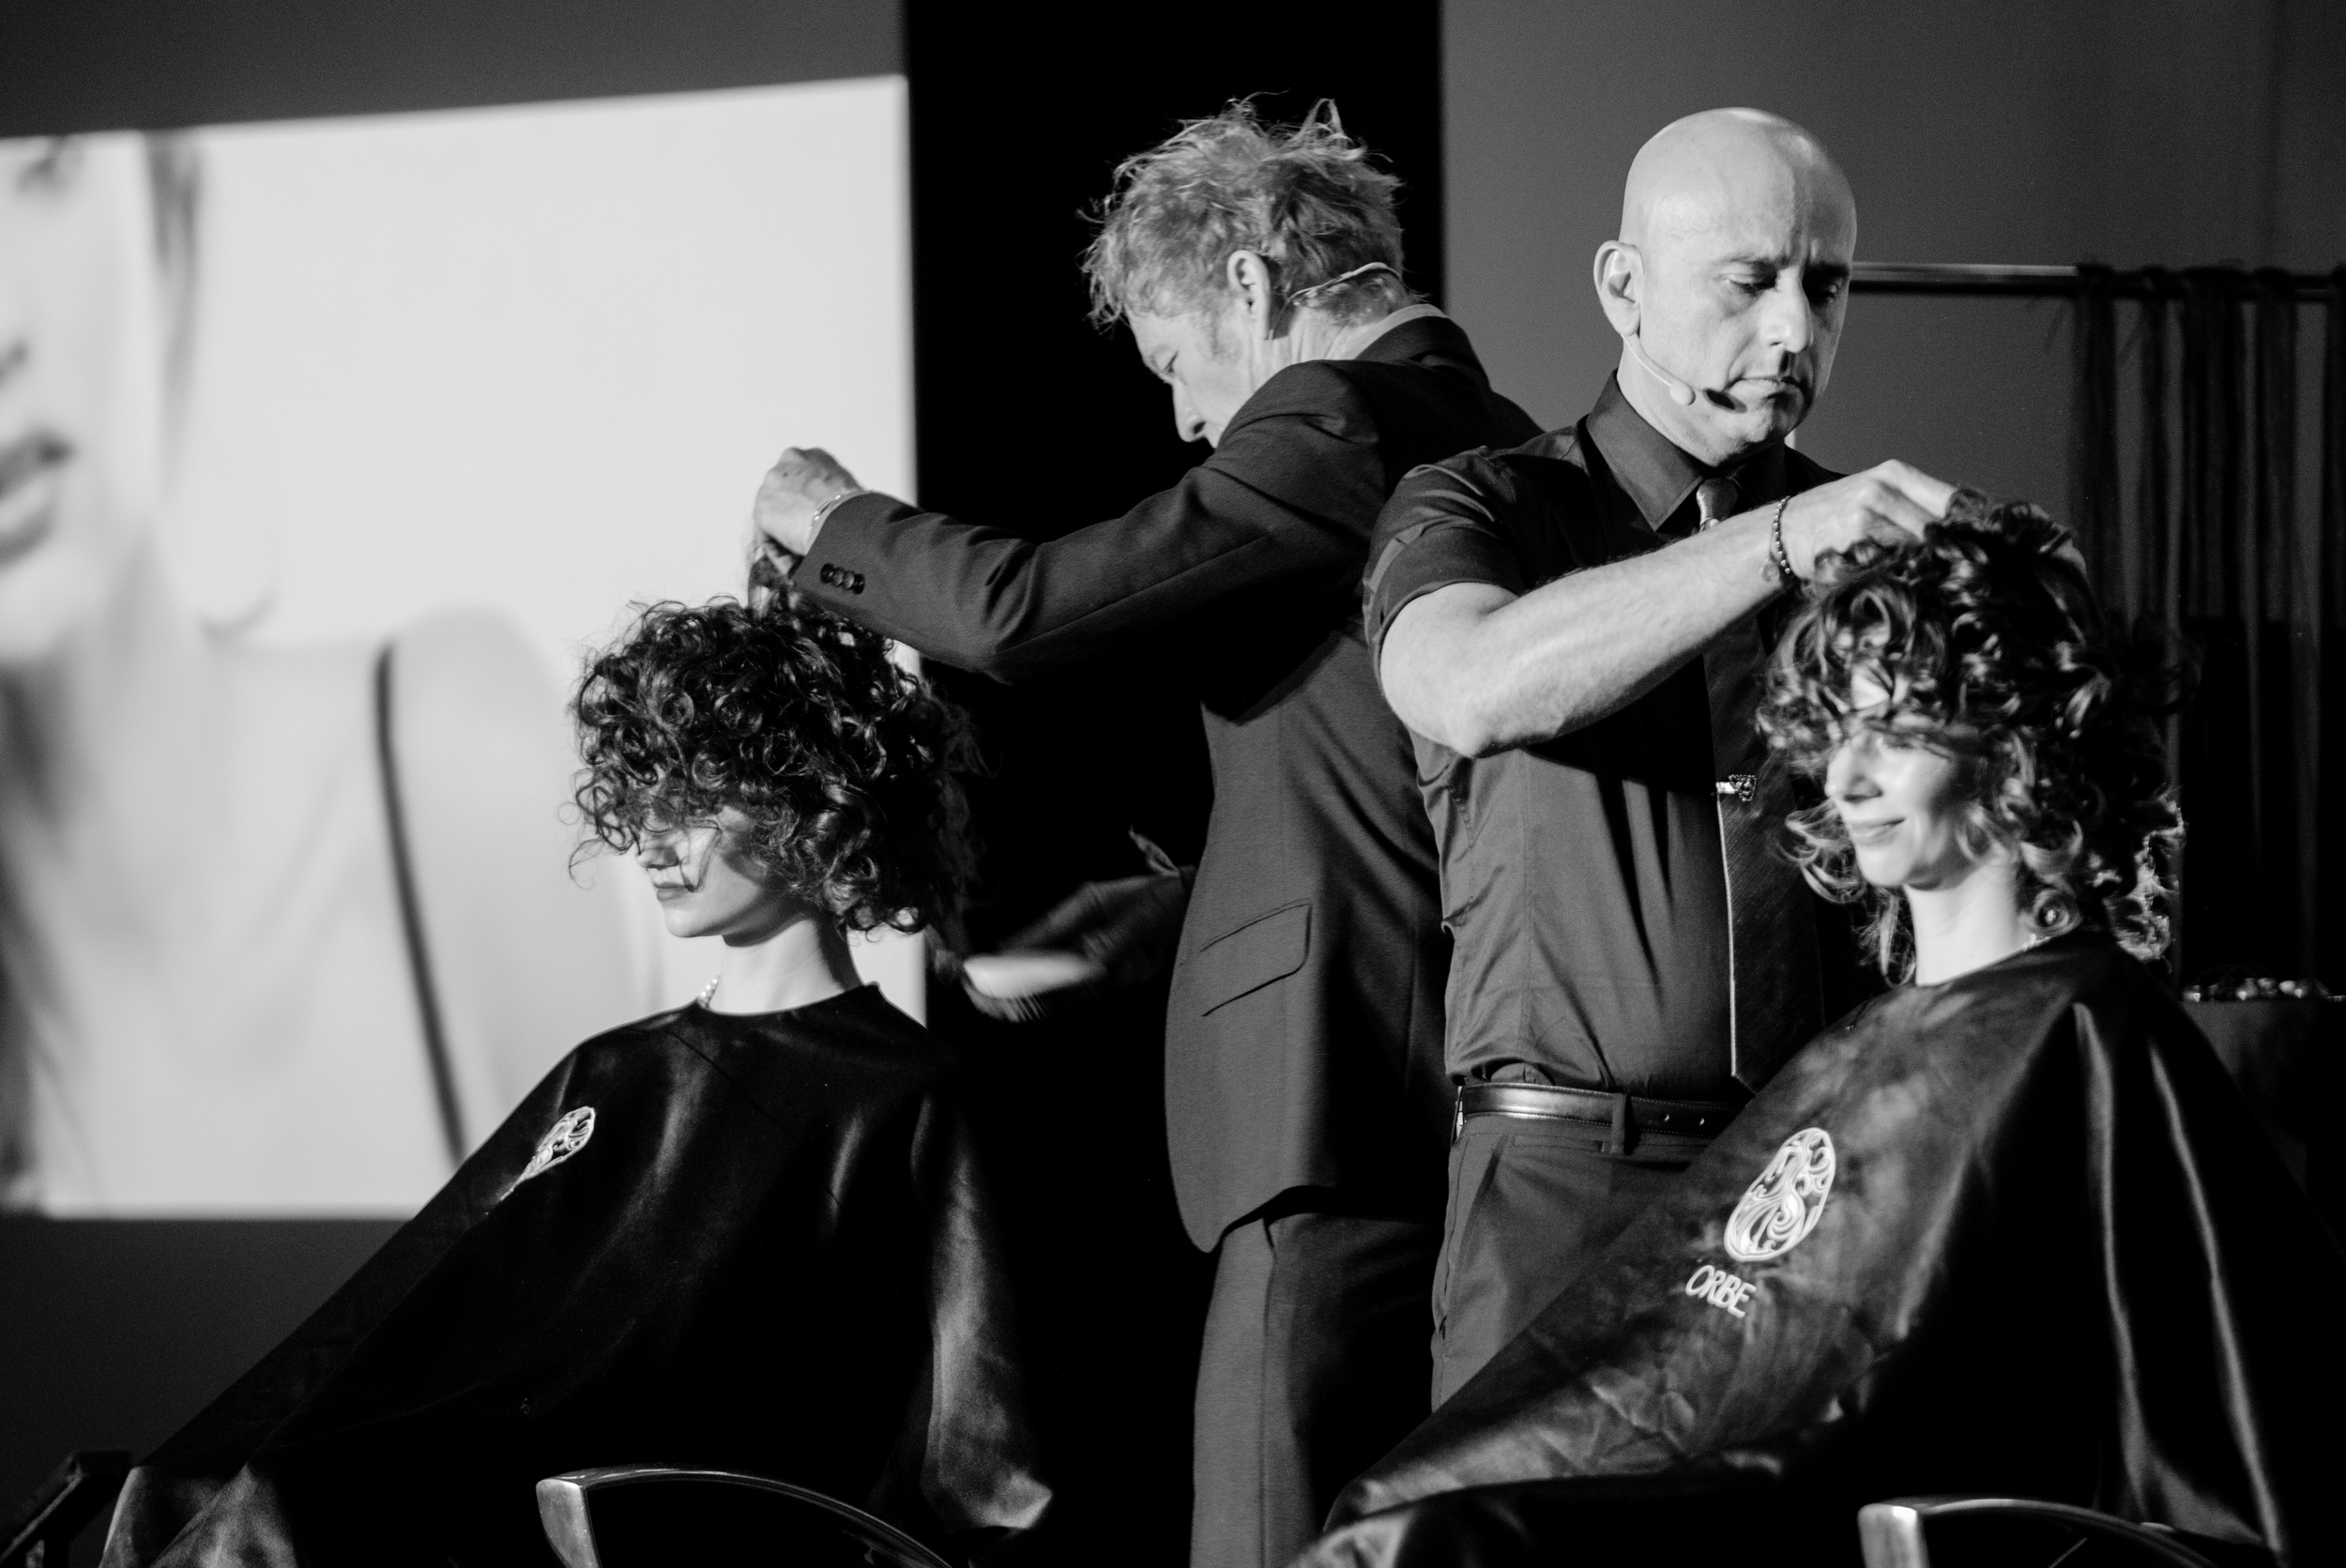 Hair by Ronnie Stam, Hair by Louis Orozco, Oribe Hair Care | On the Road - Chicago, Photographed by Khiem Hoang